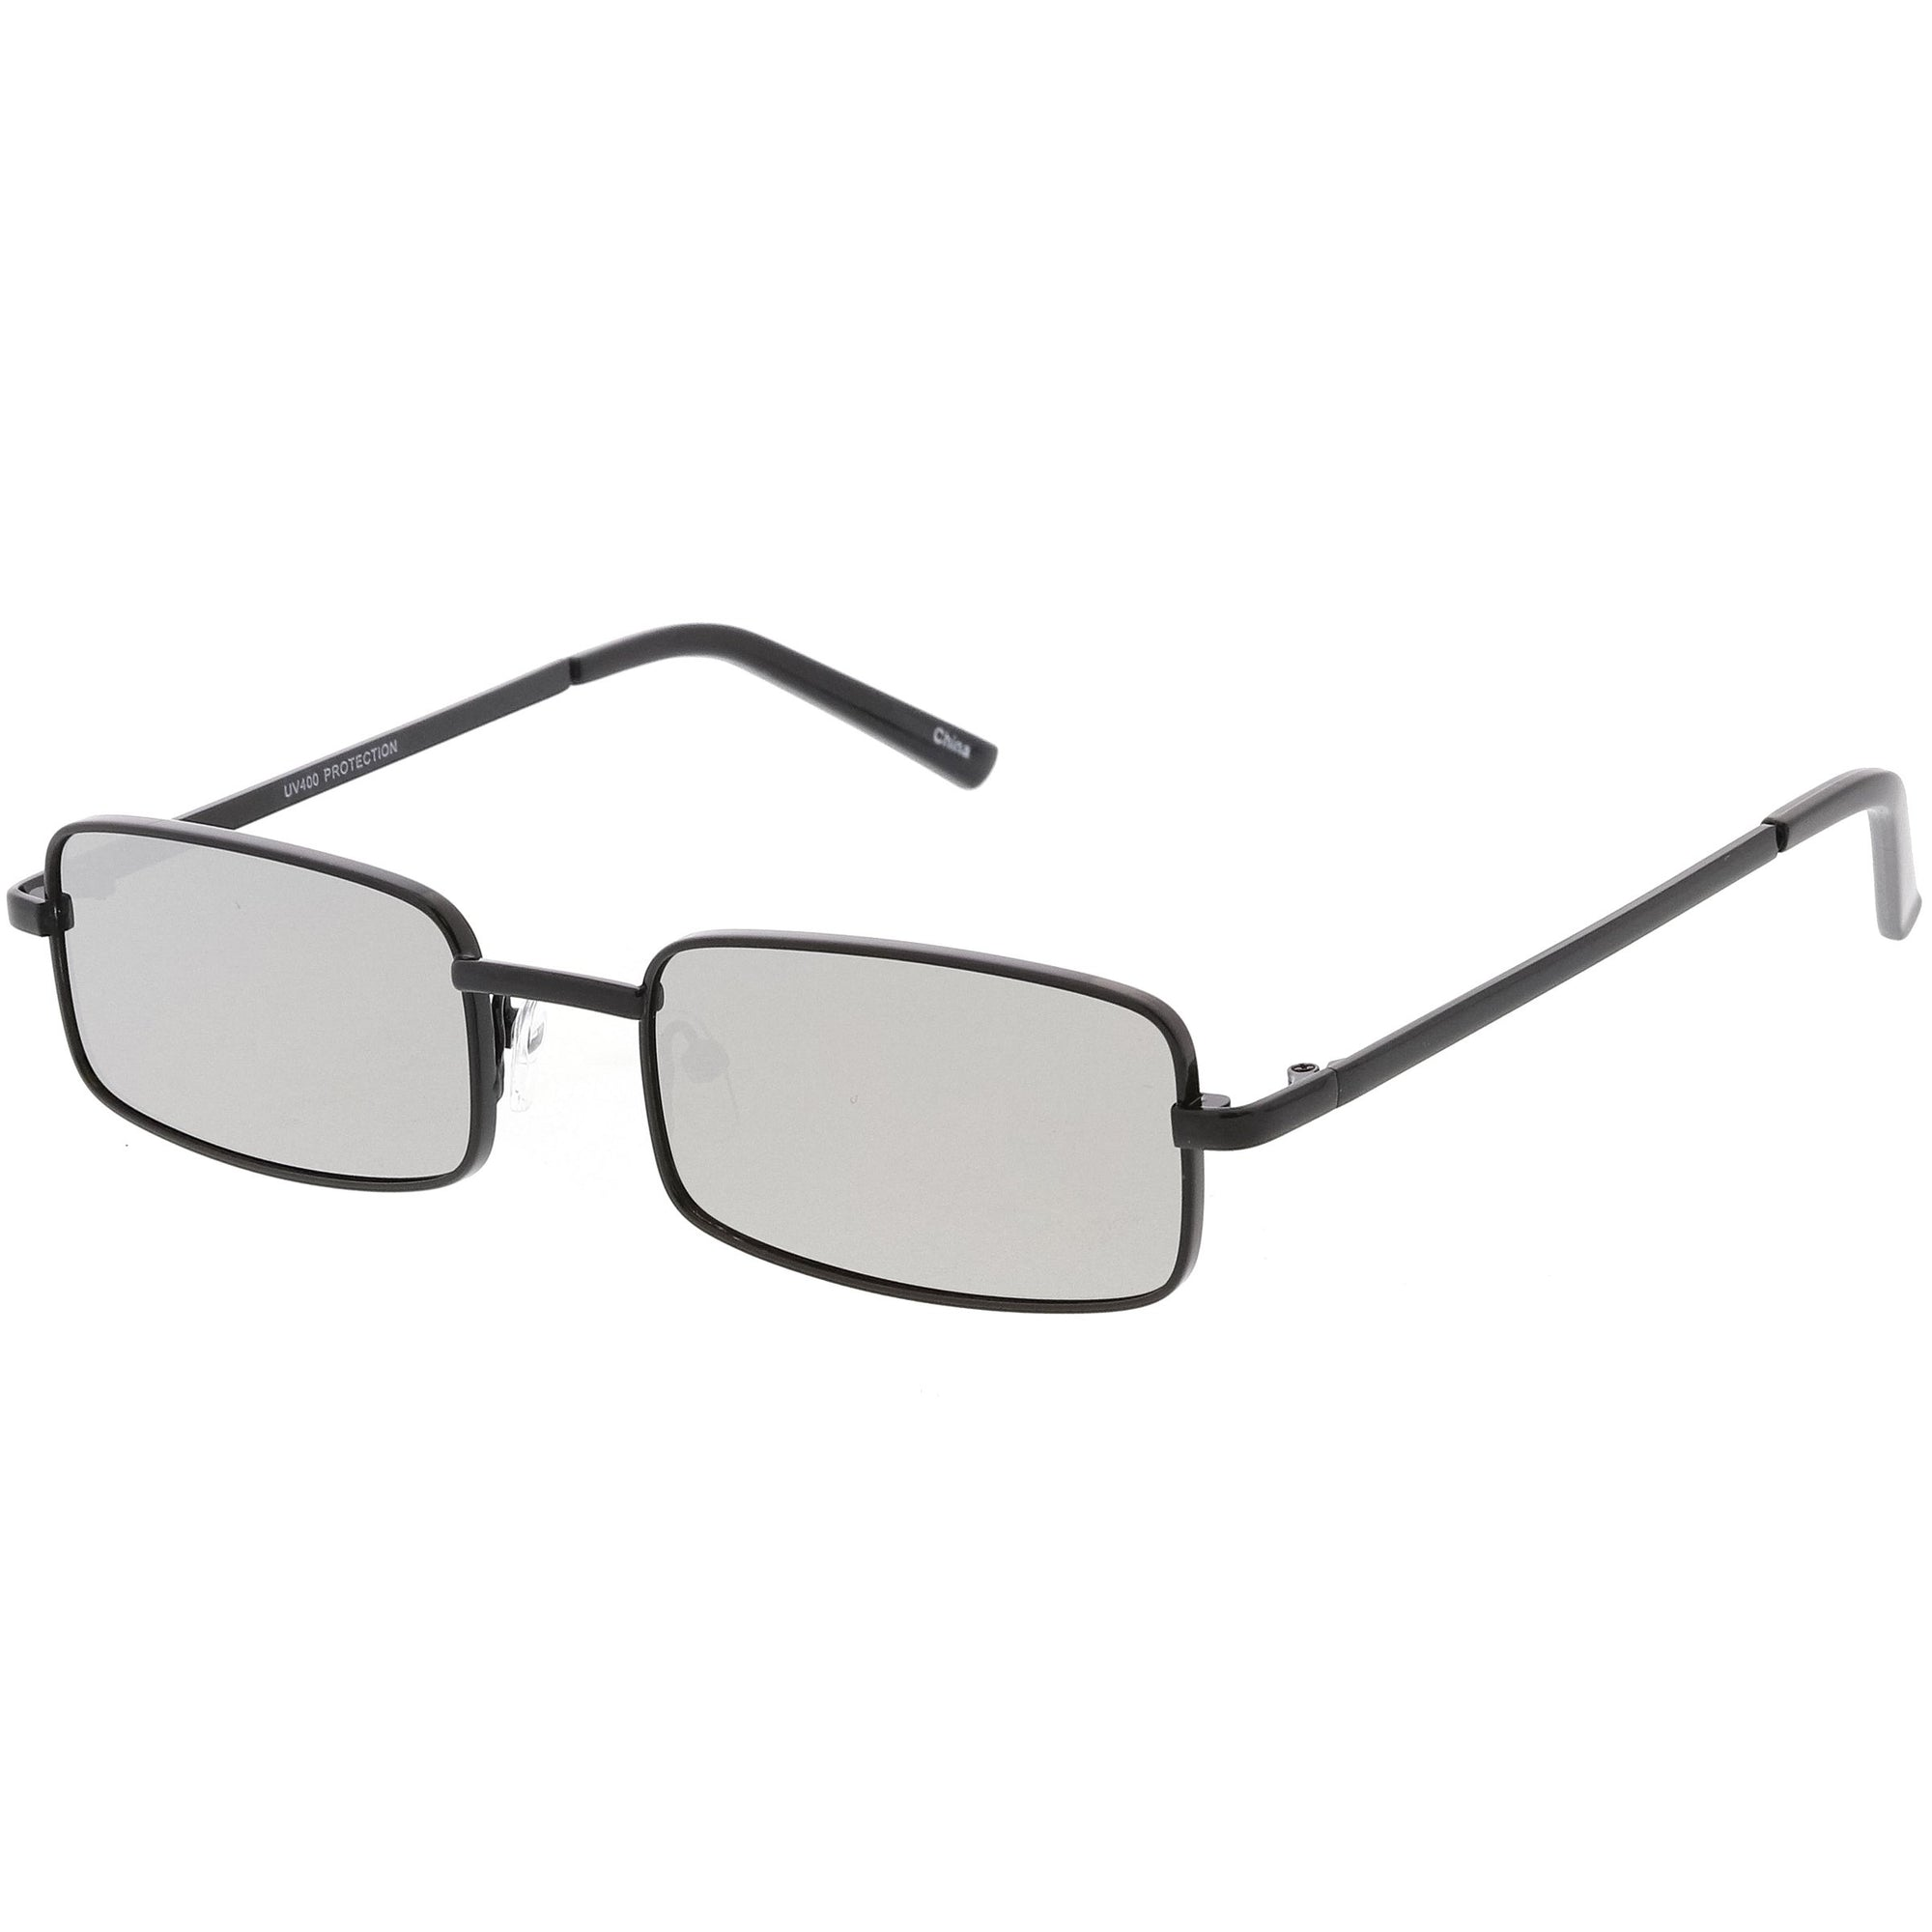 Sunglasses Small Mirrored Lens Flat Rectangle Retro Unisex C597 29IEHYWD